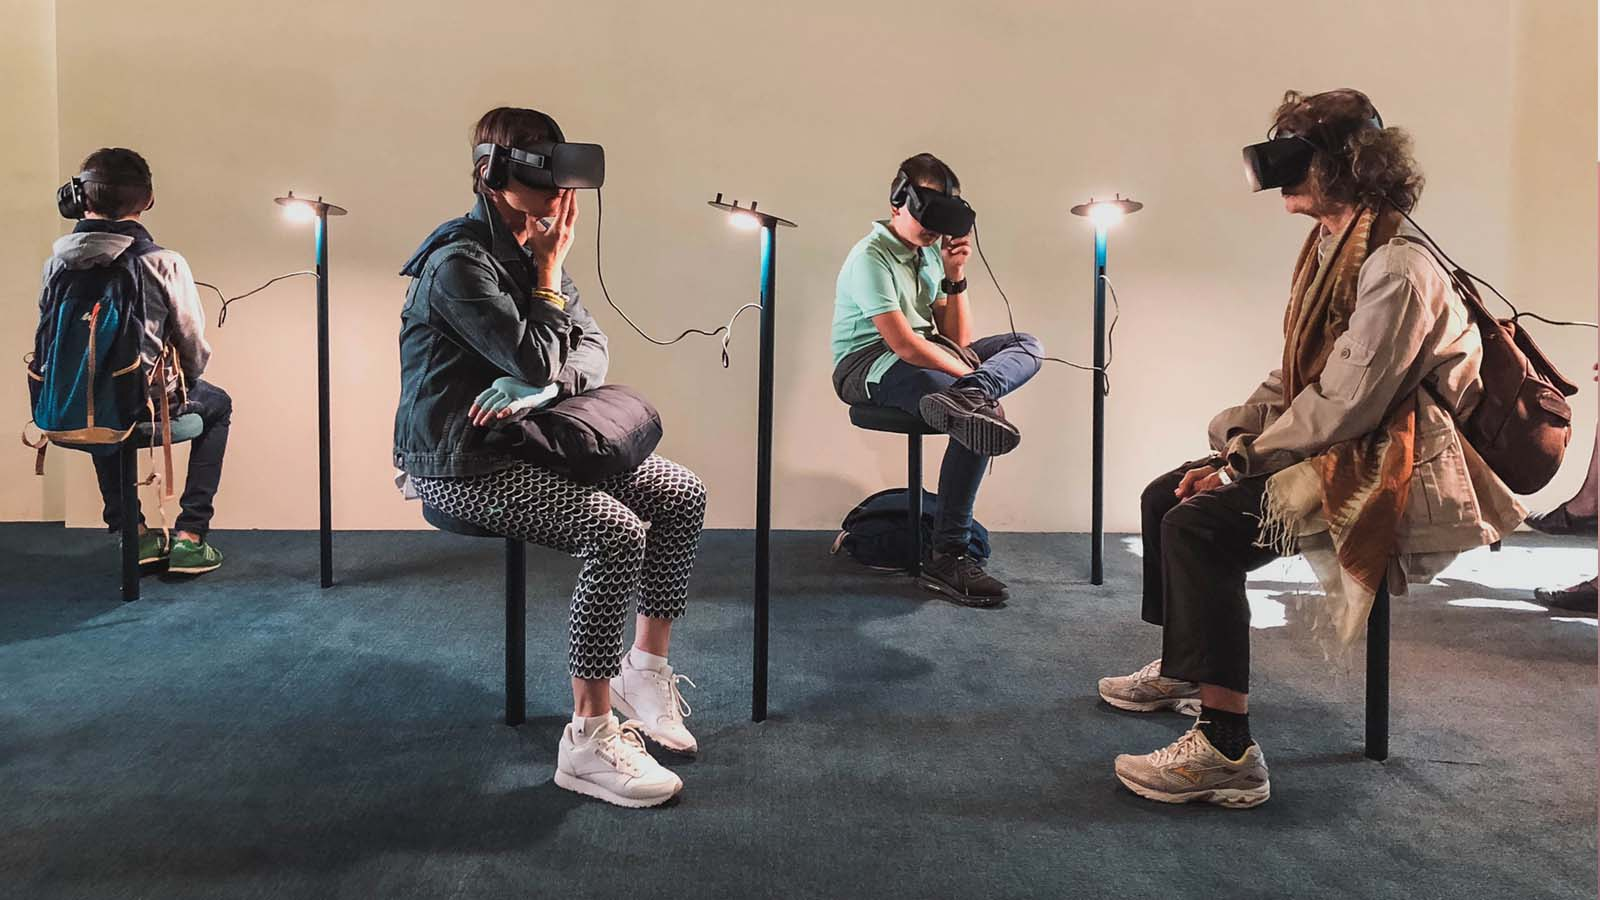 four individuals of different ages wearing VR headsets